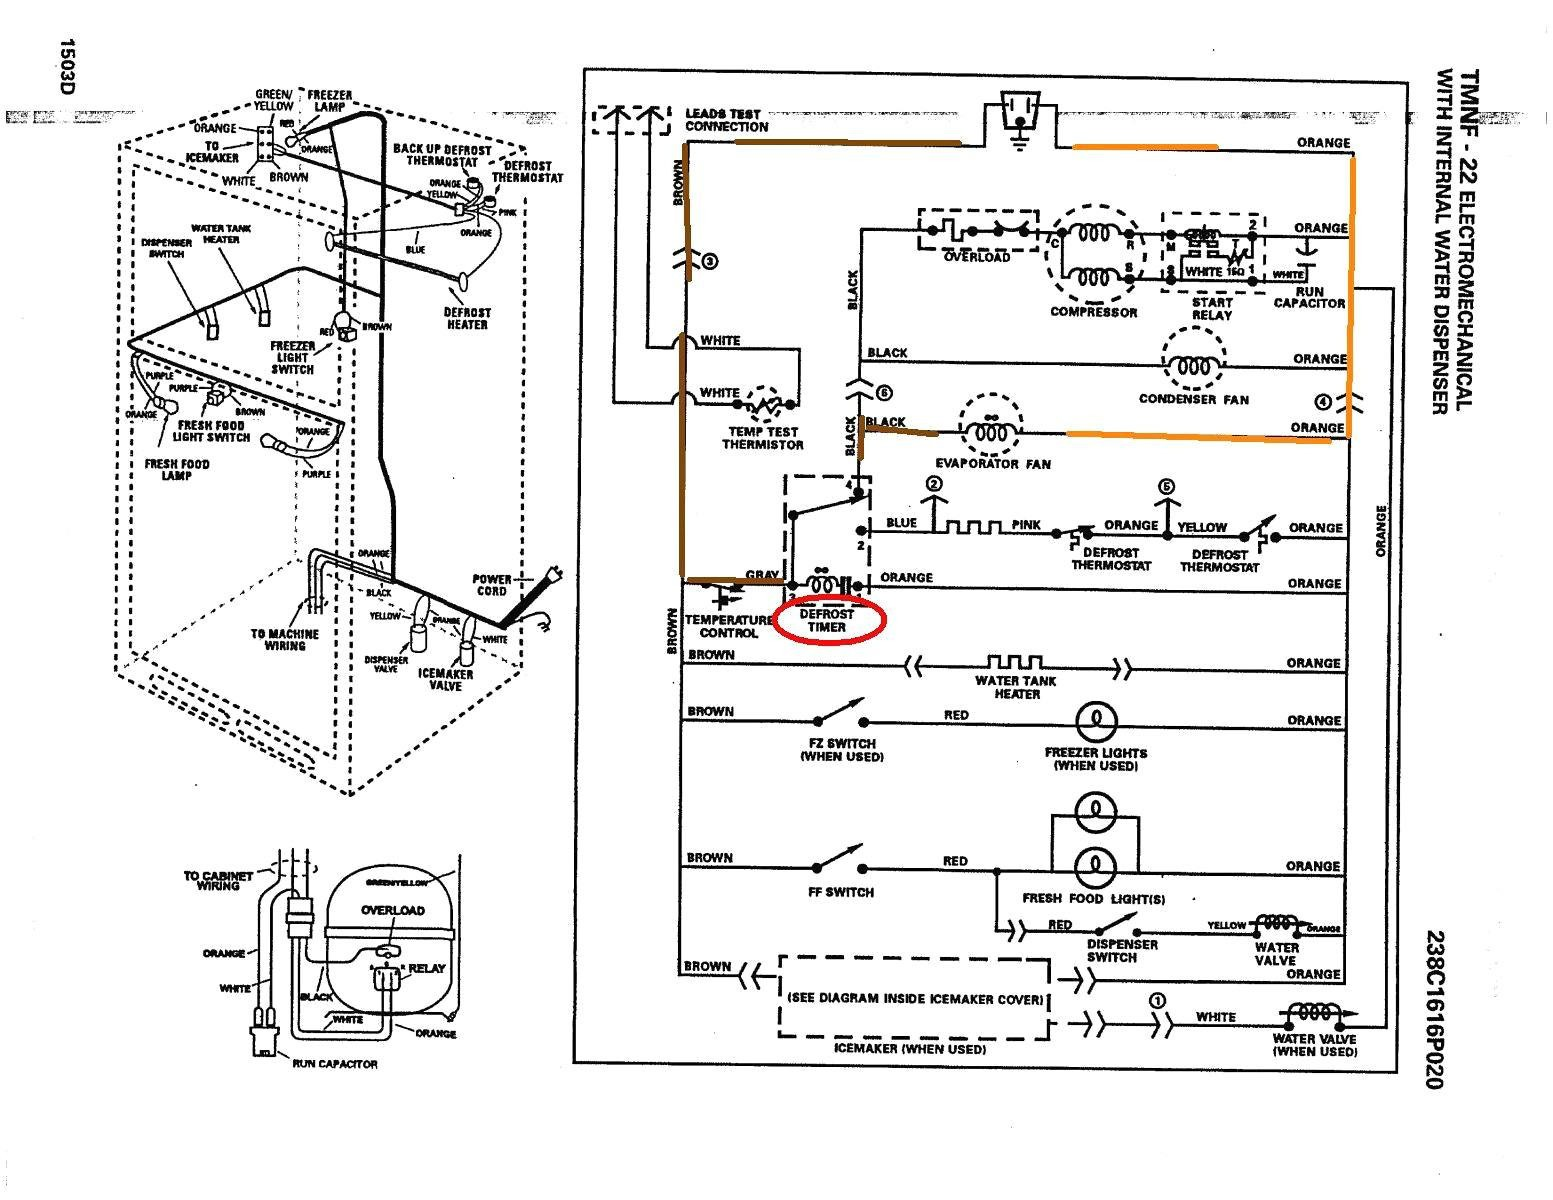 [QMVU_8575]  26F Ge Refrigerator Wiring Diagrams Gss25wstss | Wiring Library | Arb Refrigerator Wiring Schematic |  | Wiring Library